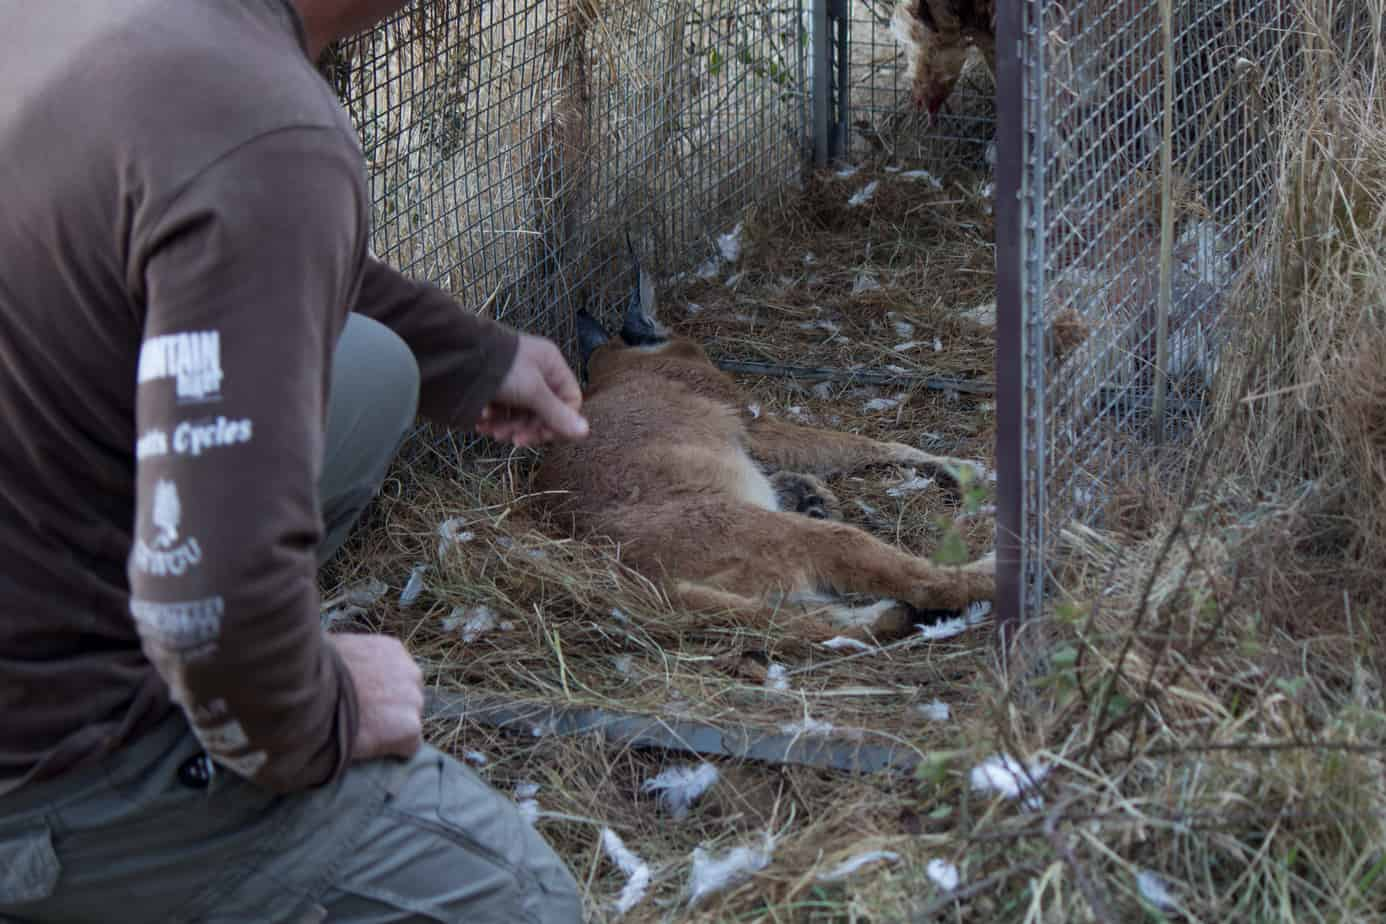 IMG 9797 - Servals & Caracals, Oh My!